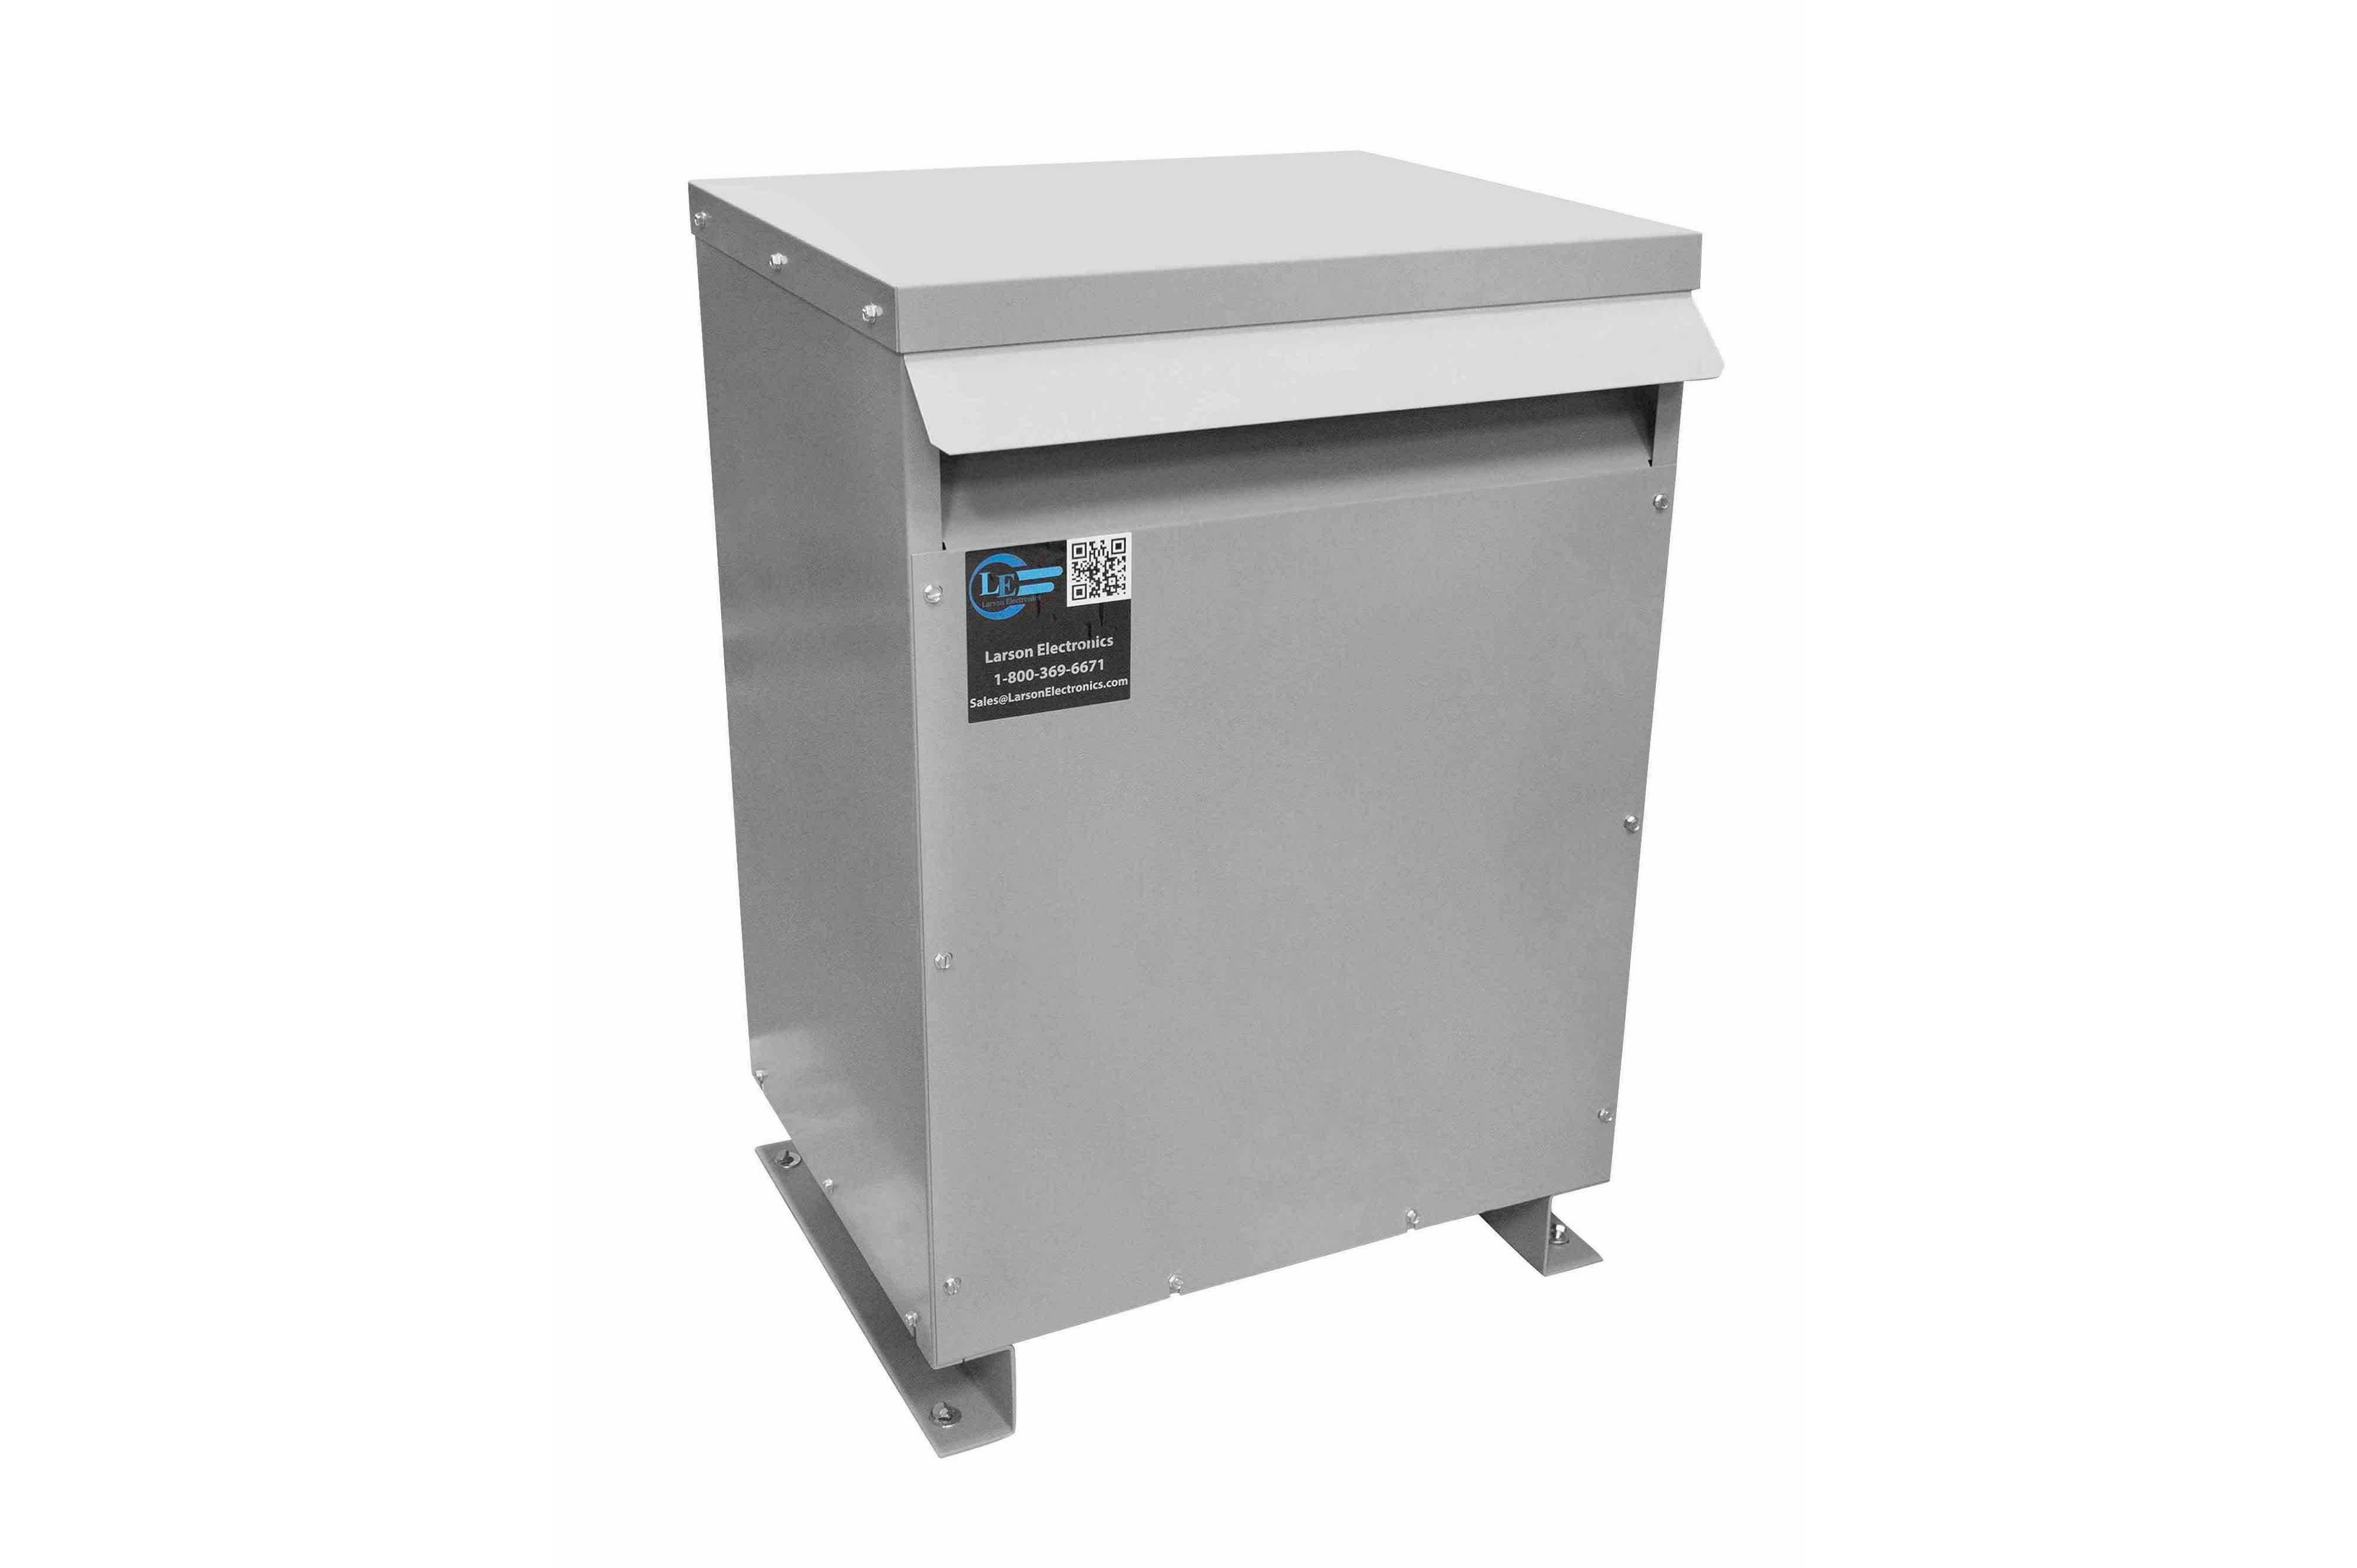 22.5 kVA 3PH Isolation Transformer, 415V Wye Primary, 208V Delta Secondary, N3R, Ventilated, 60 Hz